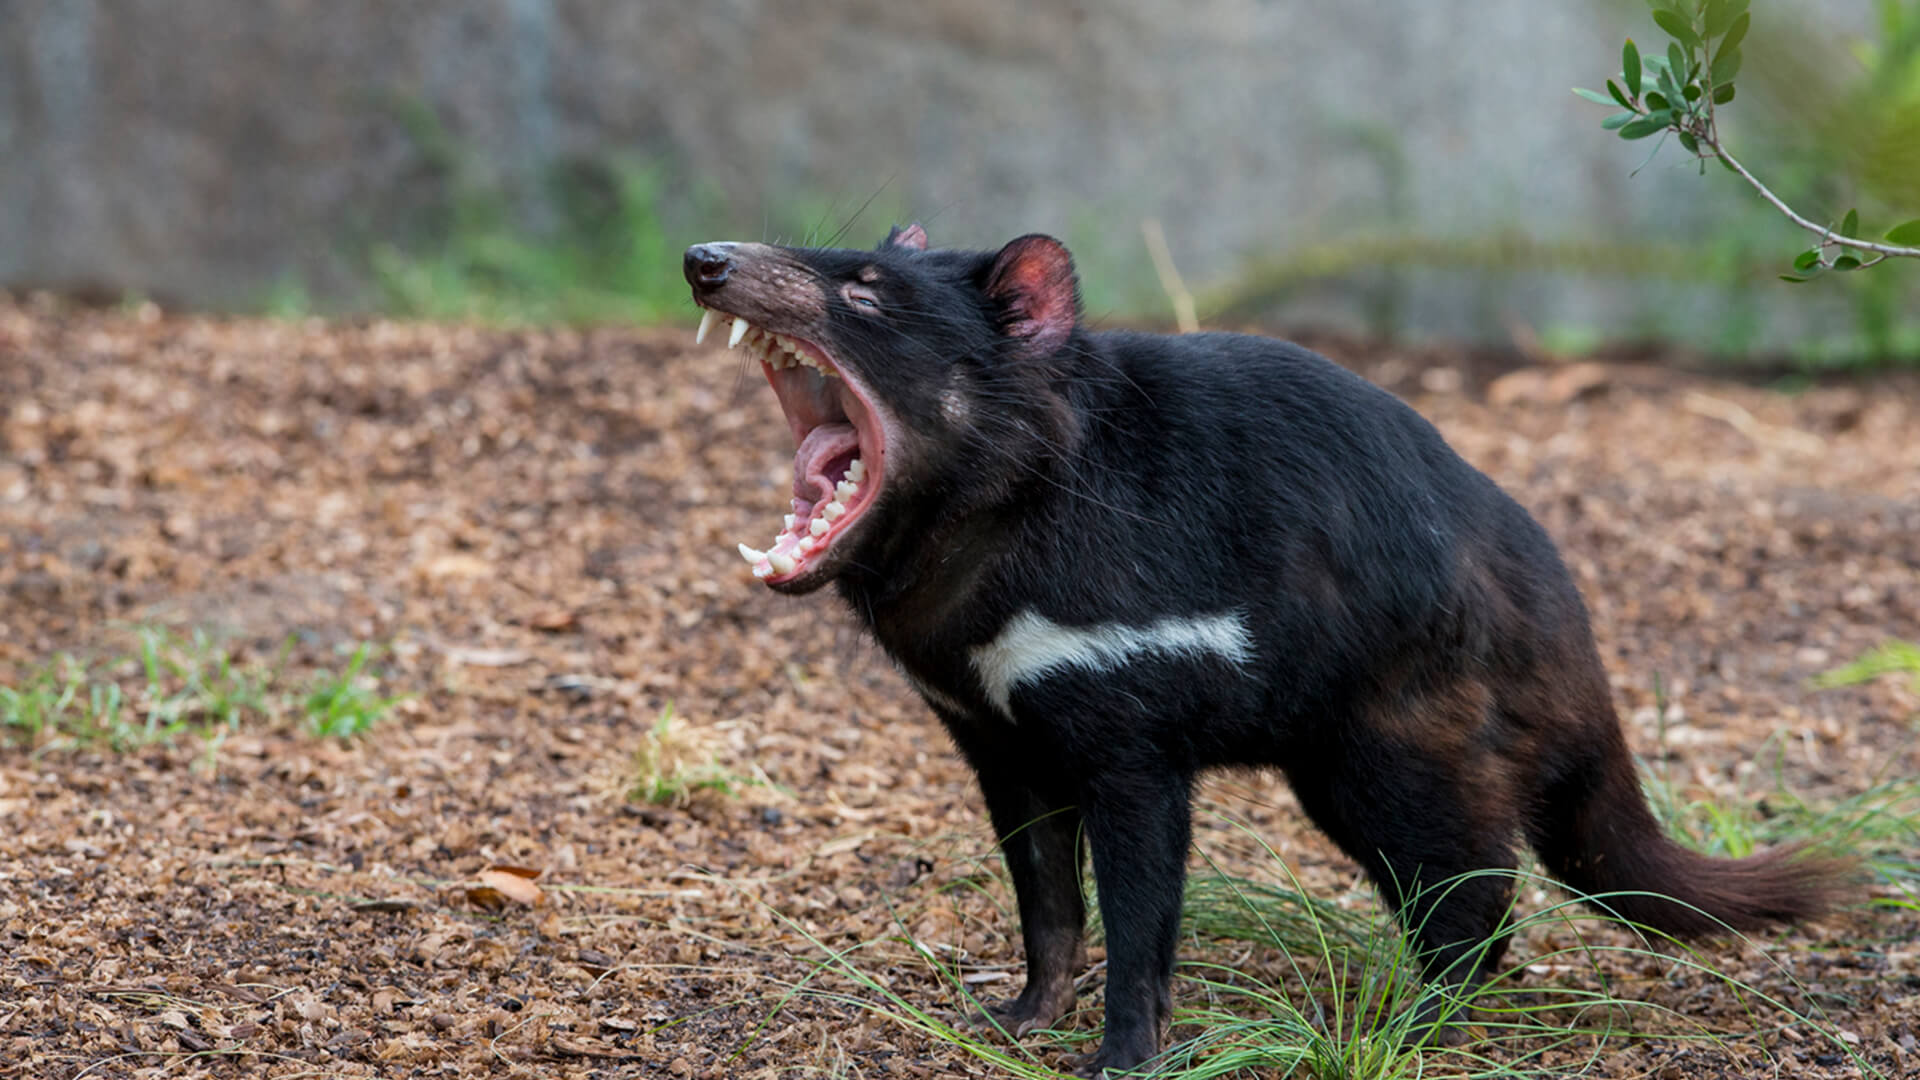 animals_hero_tasmaniandevil.jpg